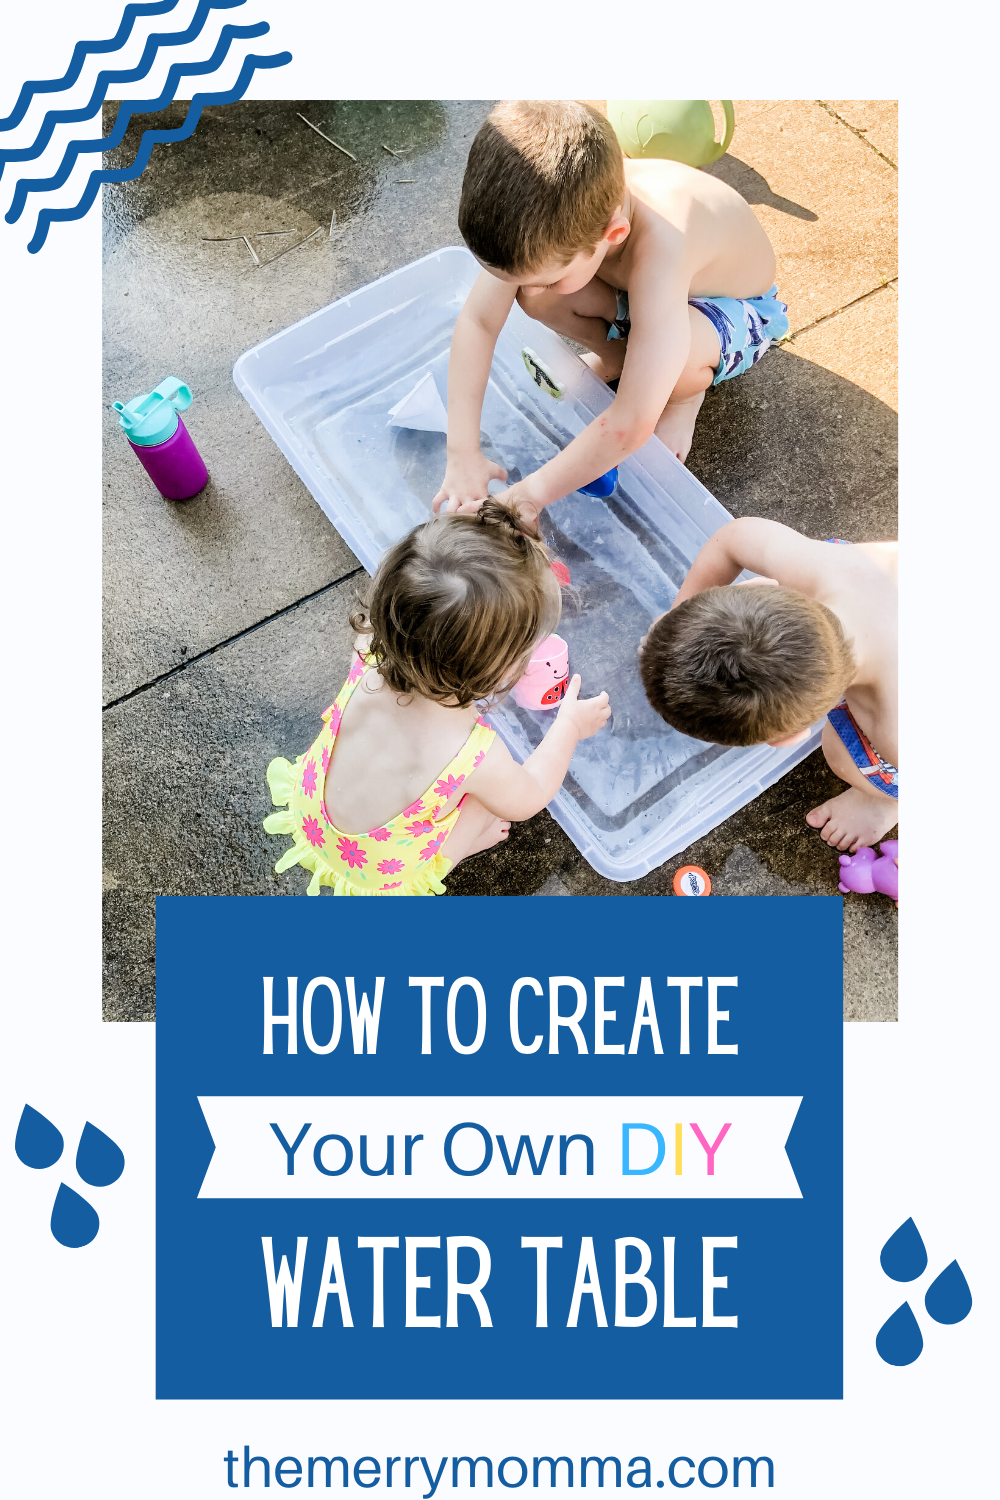 How to Make Your DIY Water Table pin image